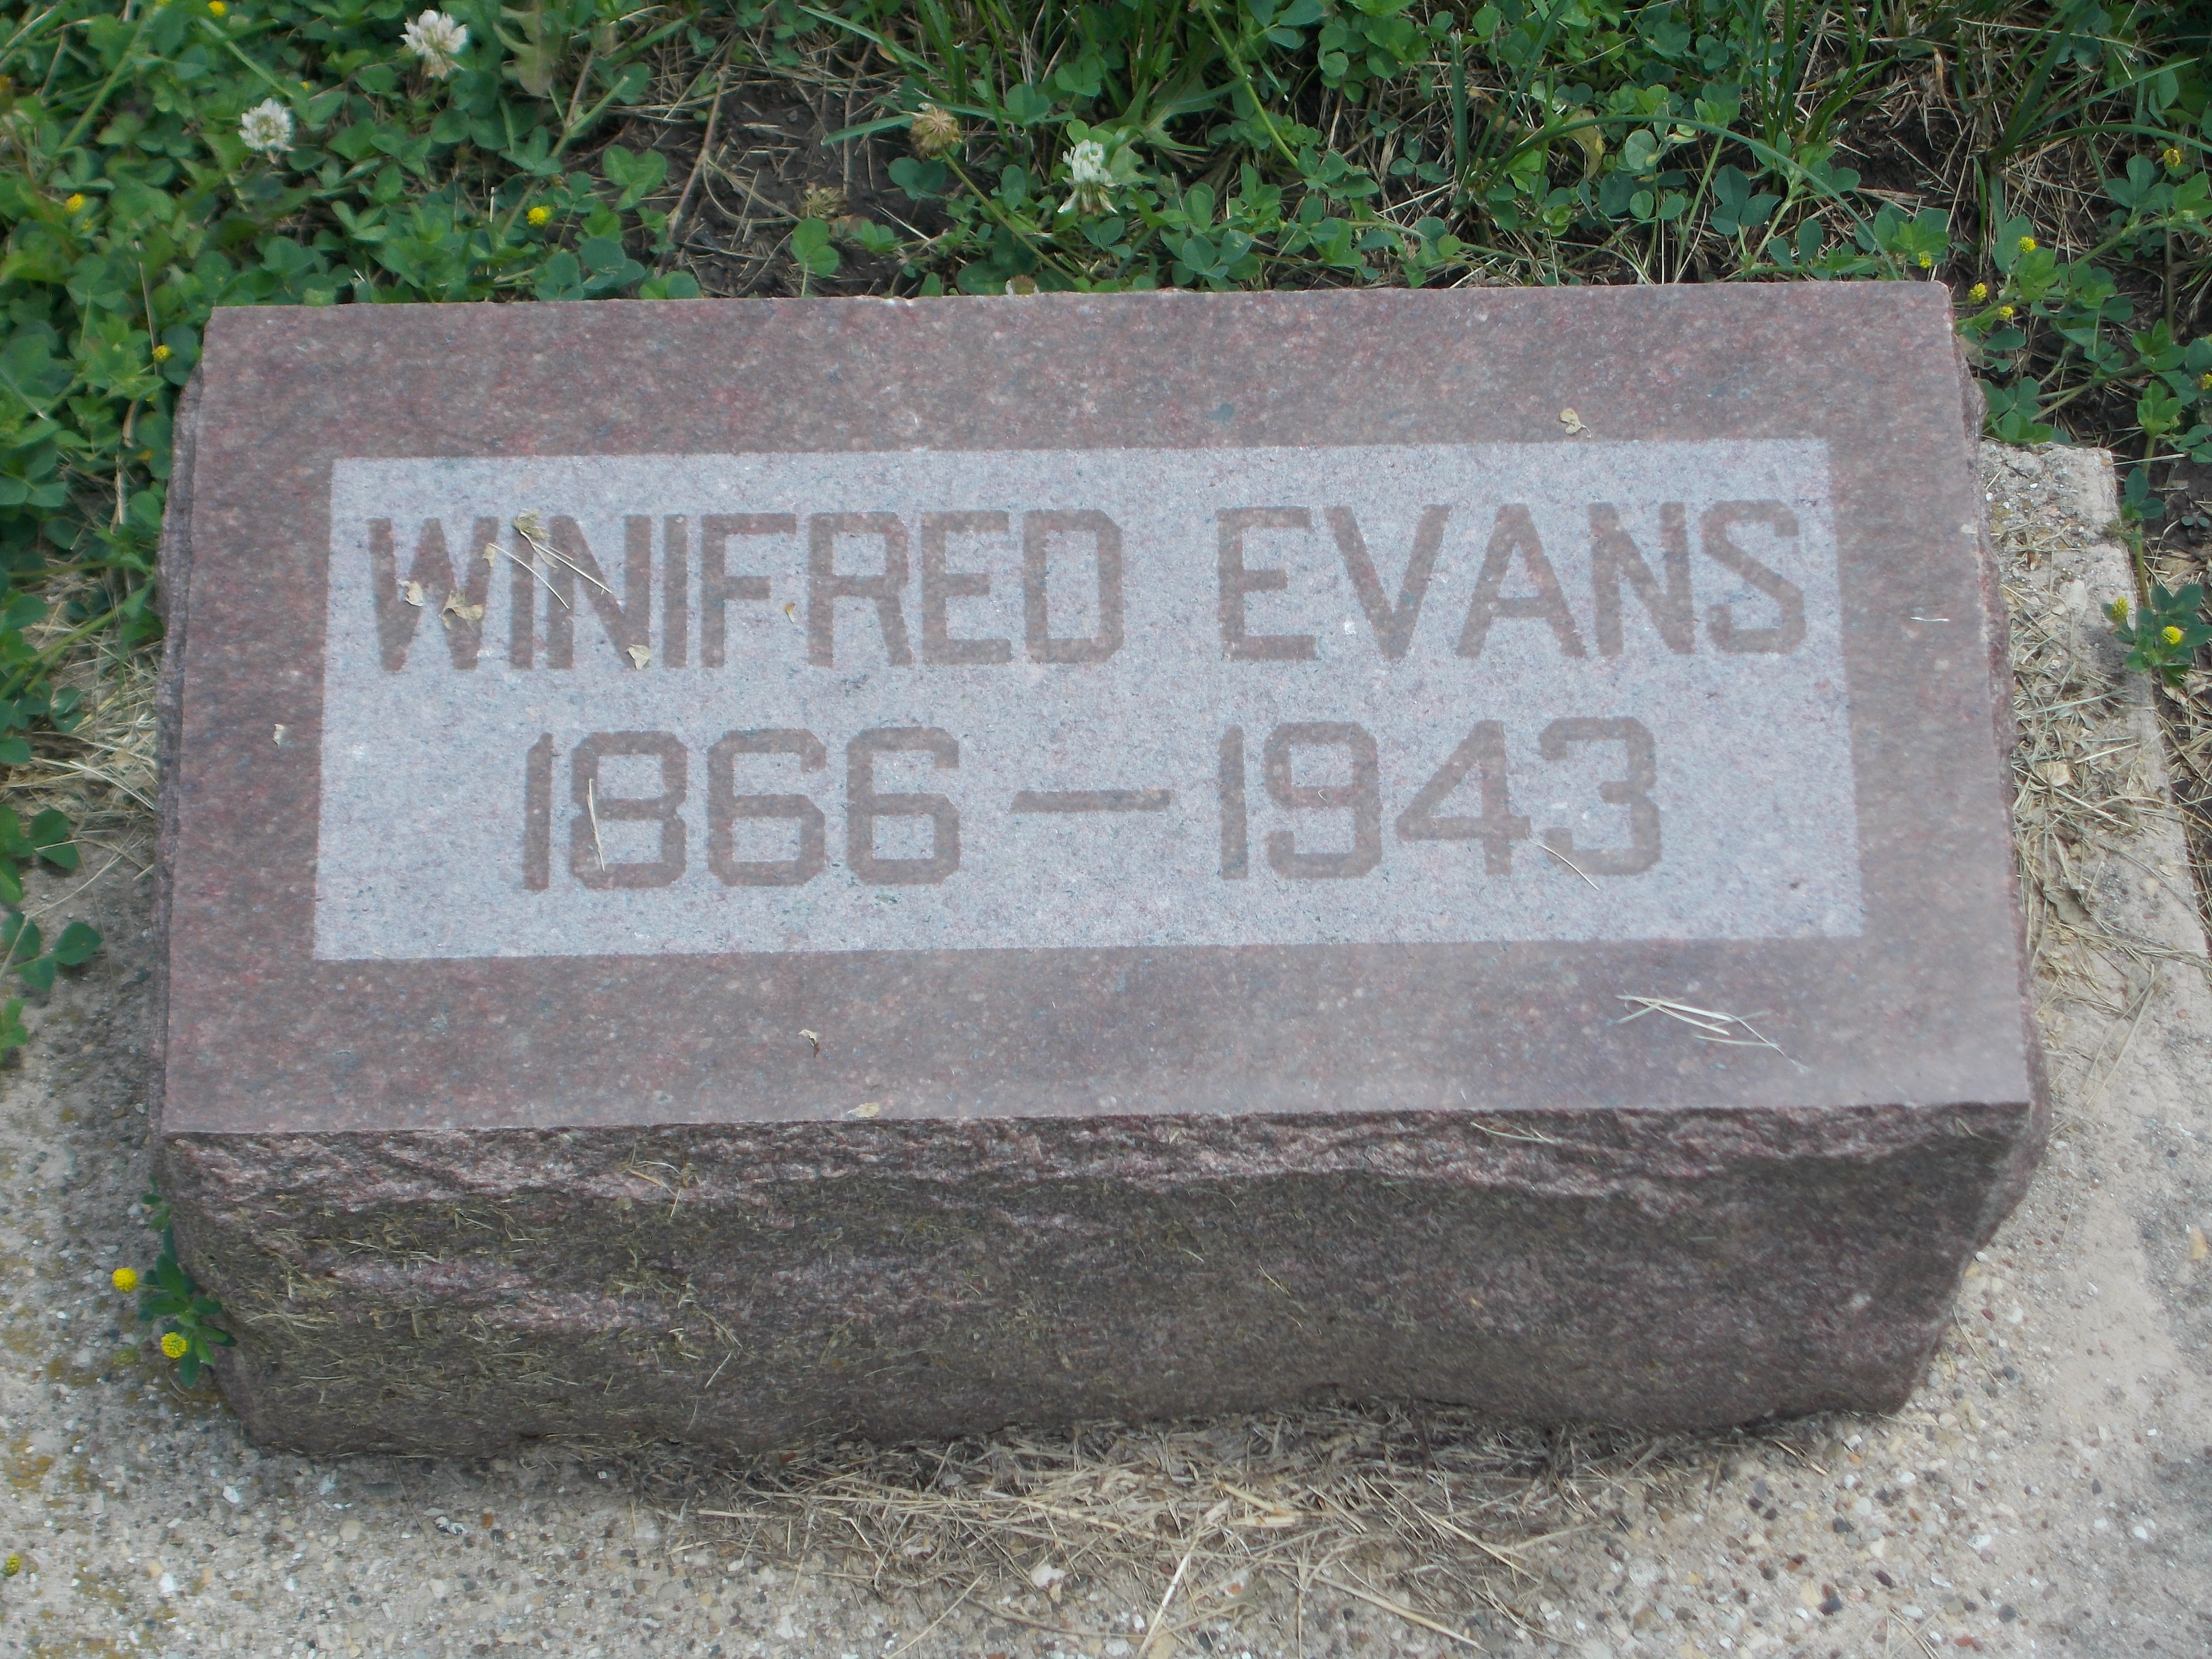 Winifred Evans